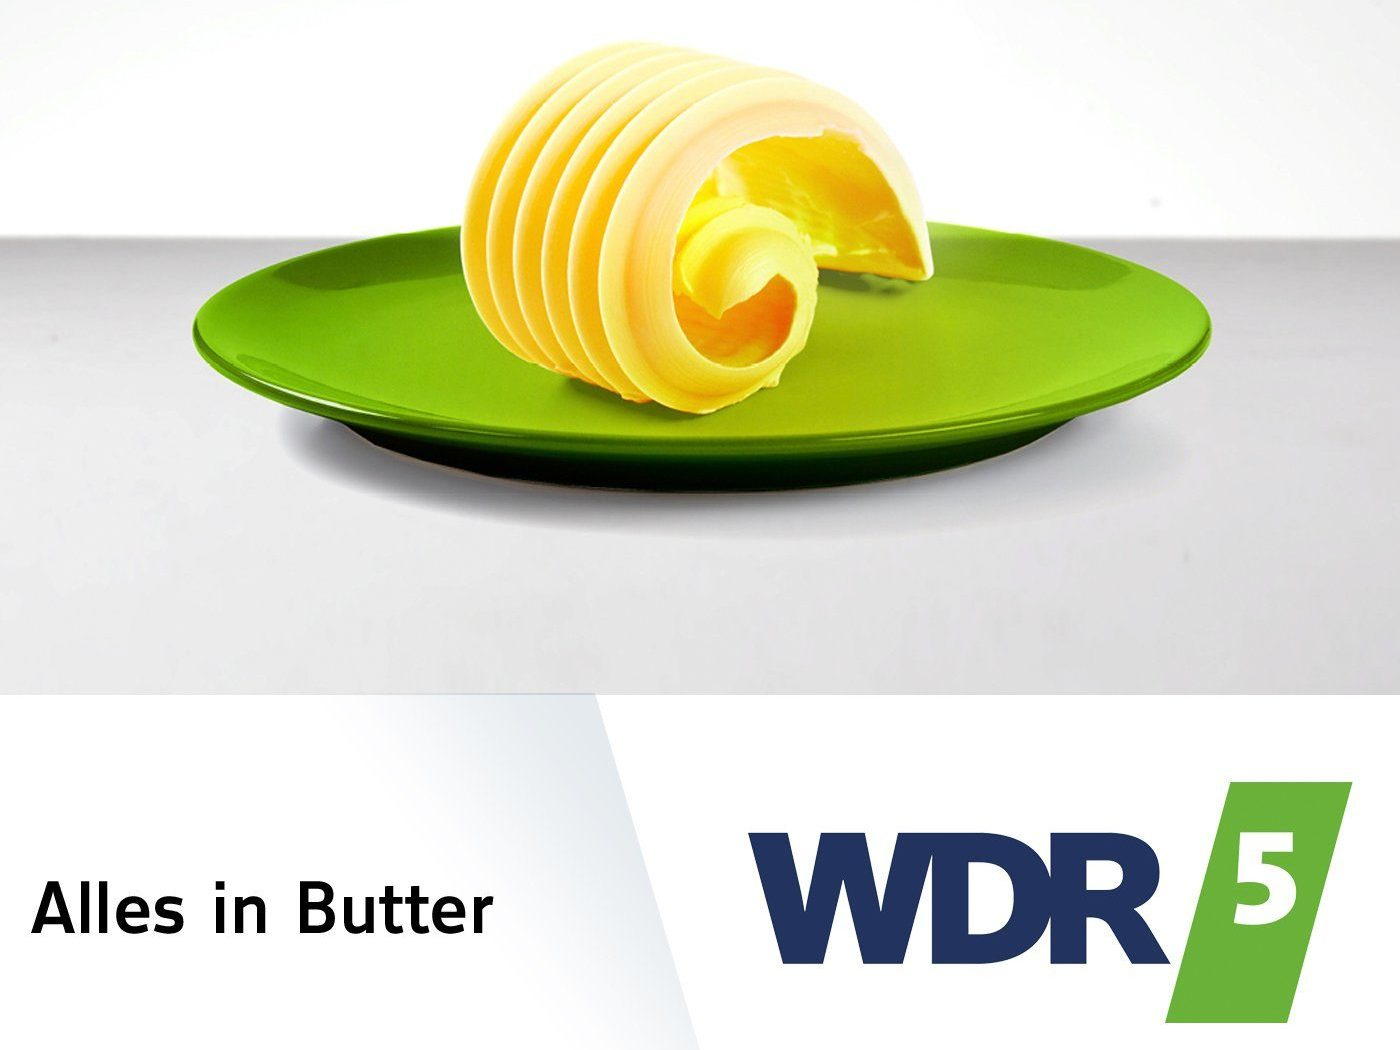 Alles in Butter / WDR5